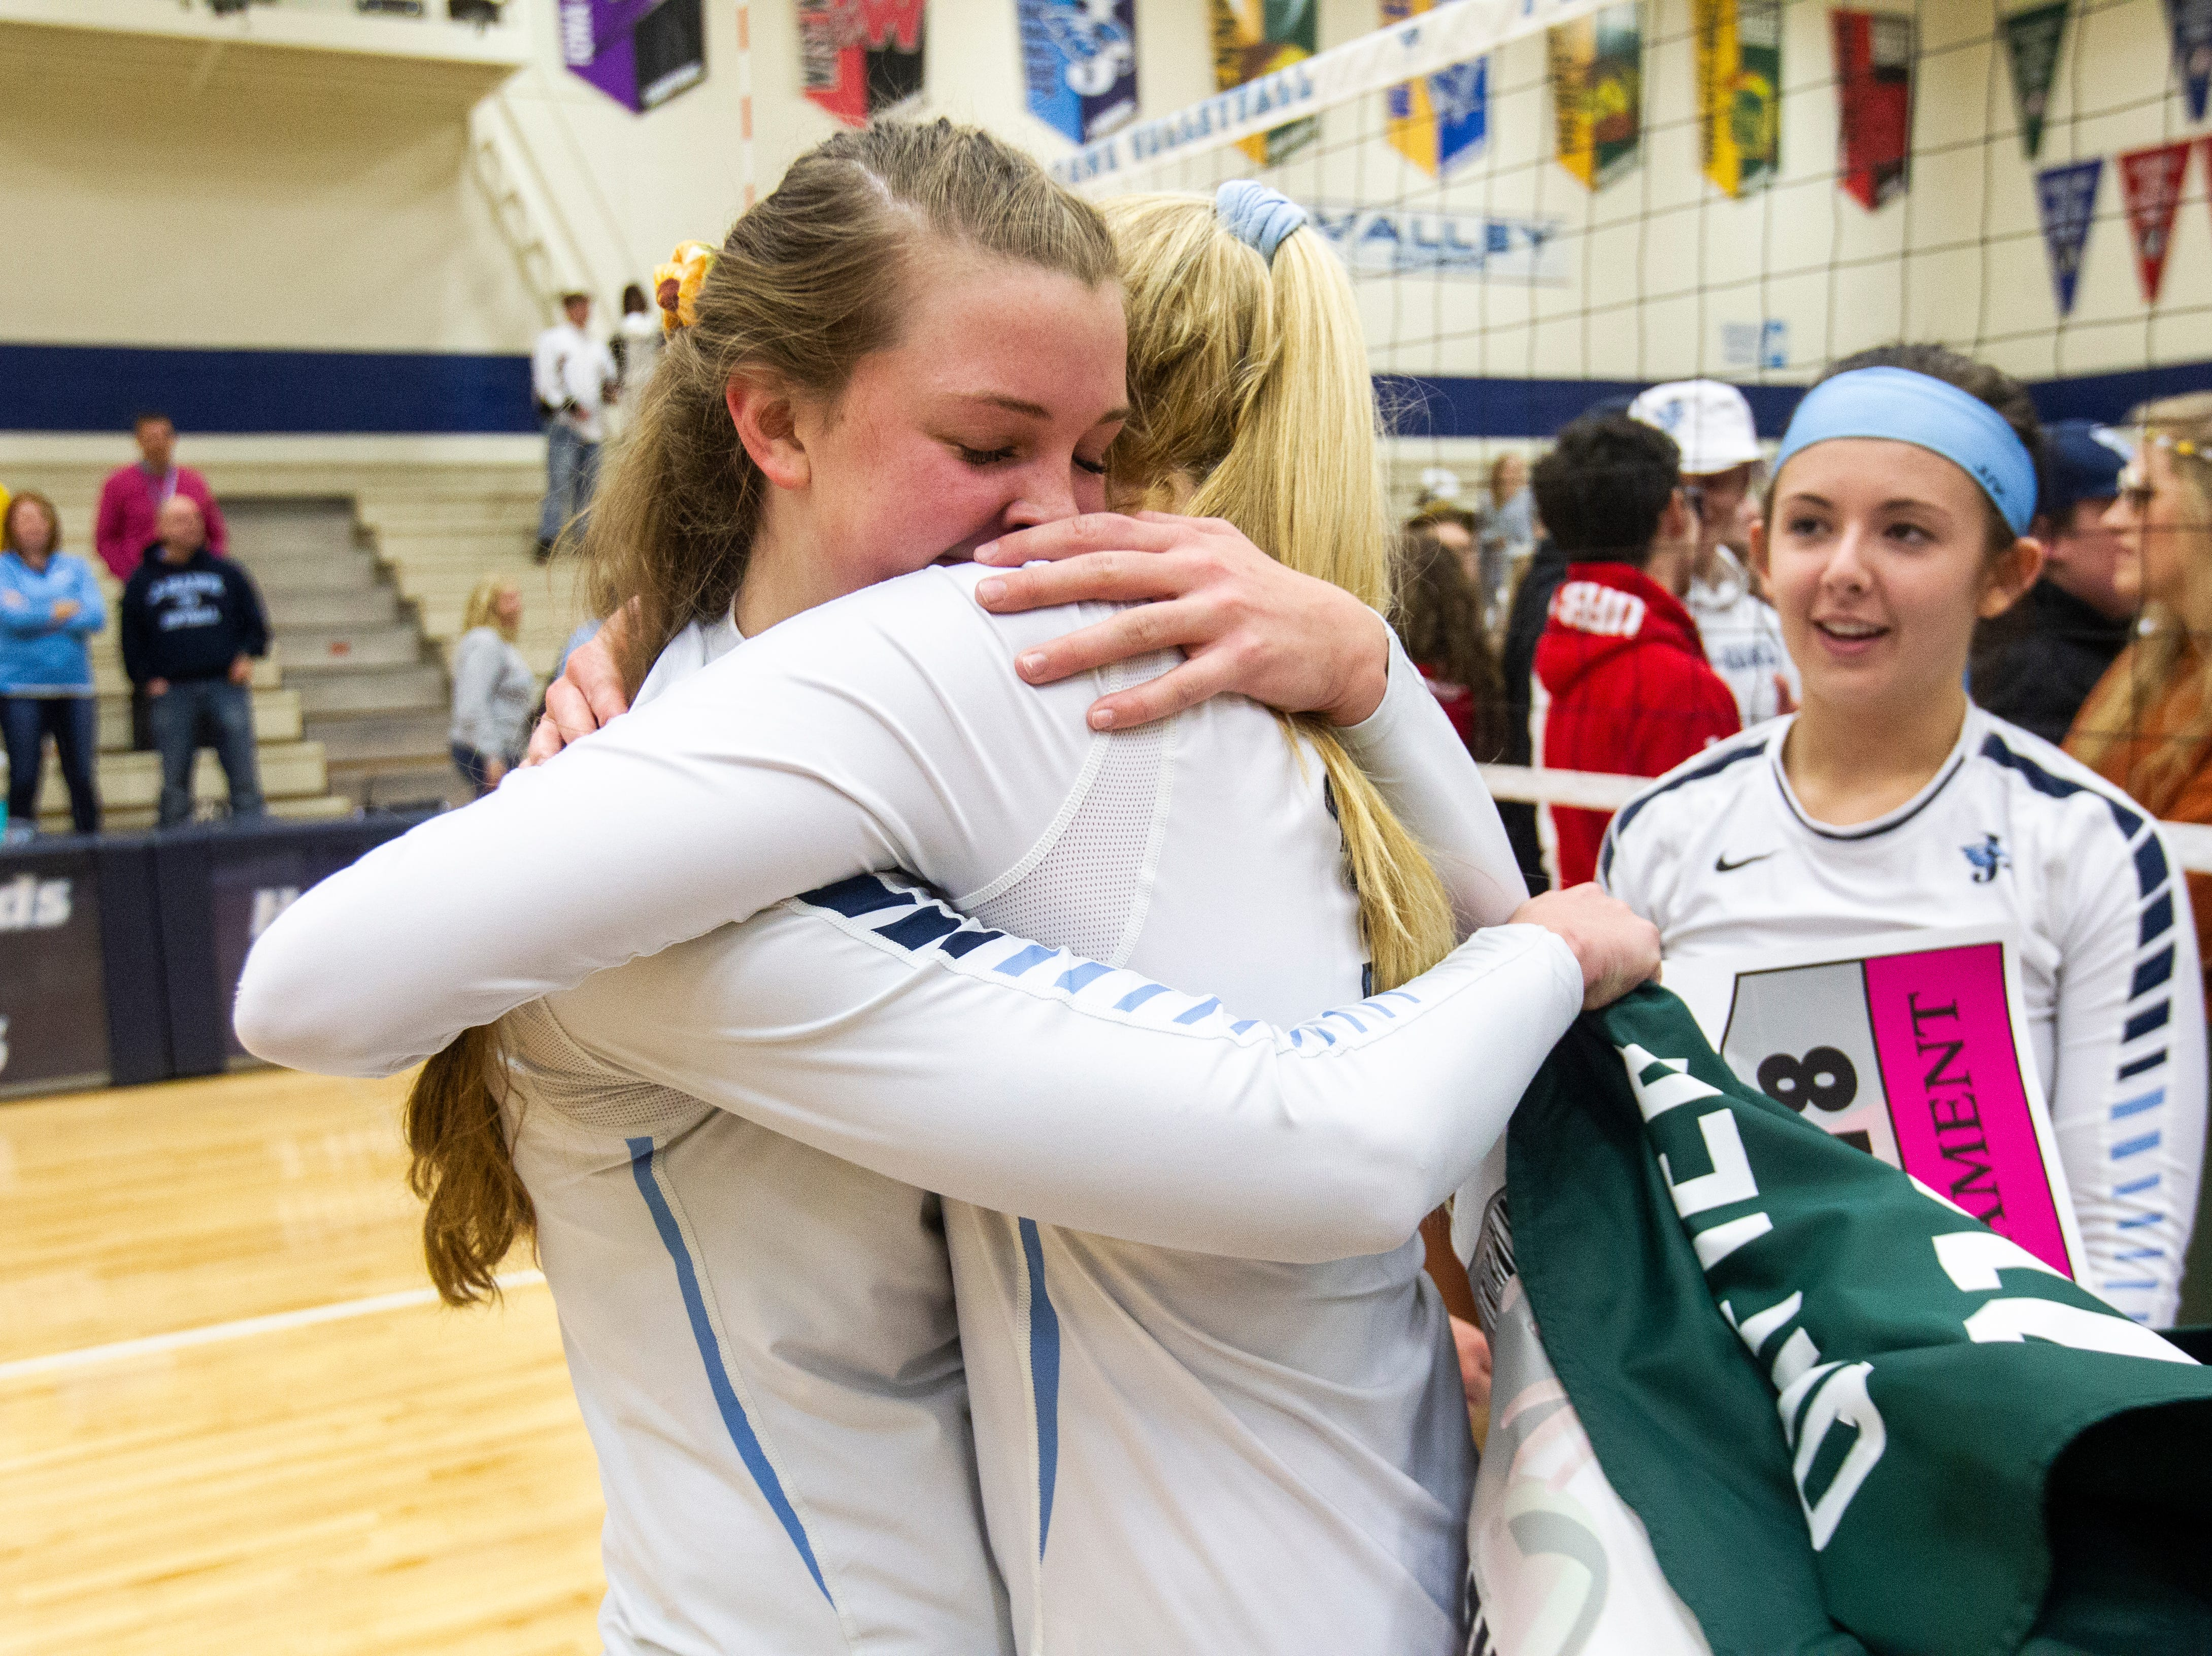 Cedar Rapids Jefferson's Sydney Kloubec (left) is embraced by Maddy Baxter after a regional final volleyball game Monday, Oct. 29, 2018, at Jefferson High School in Cedar Rapids.